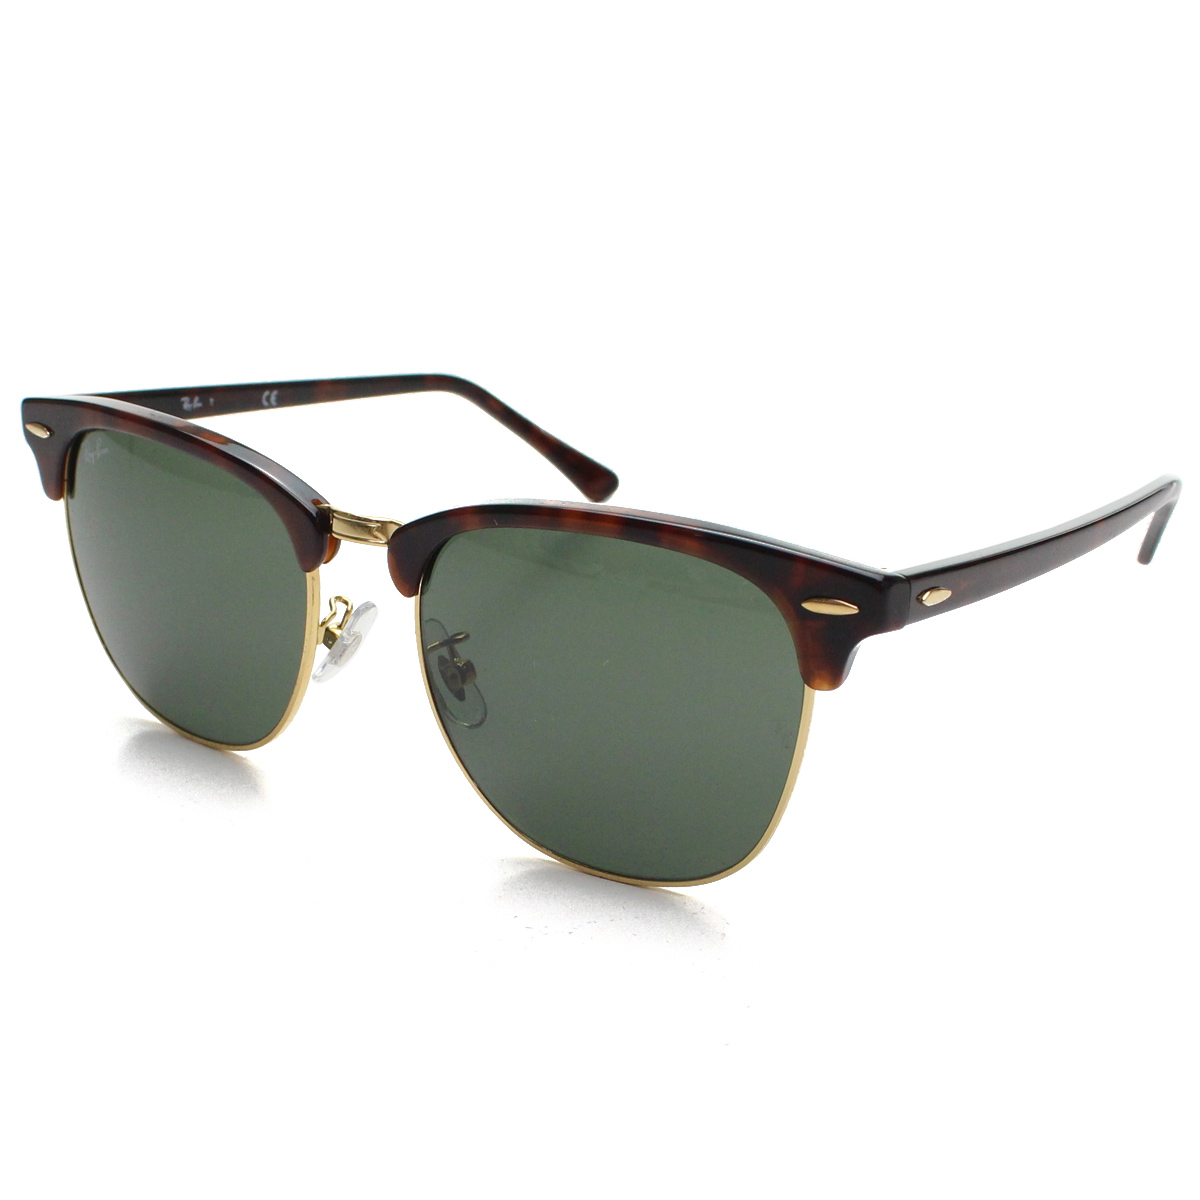 99c7c6d6f3 Bighit The total brand wholesale  Gold system of Ray-Ban Ray-Ban sunglasses  RB3016F W0366(55) Brown line